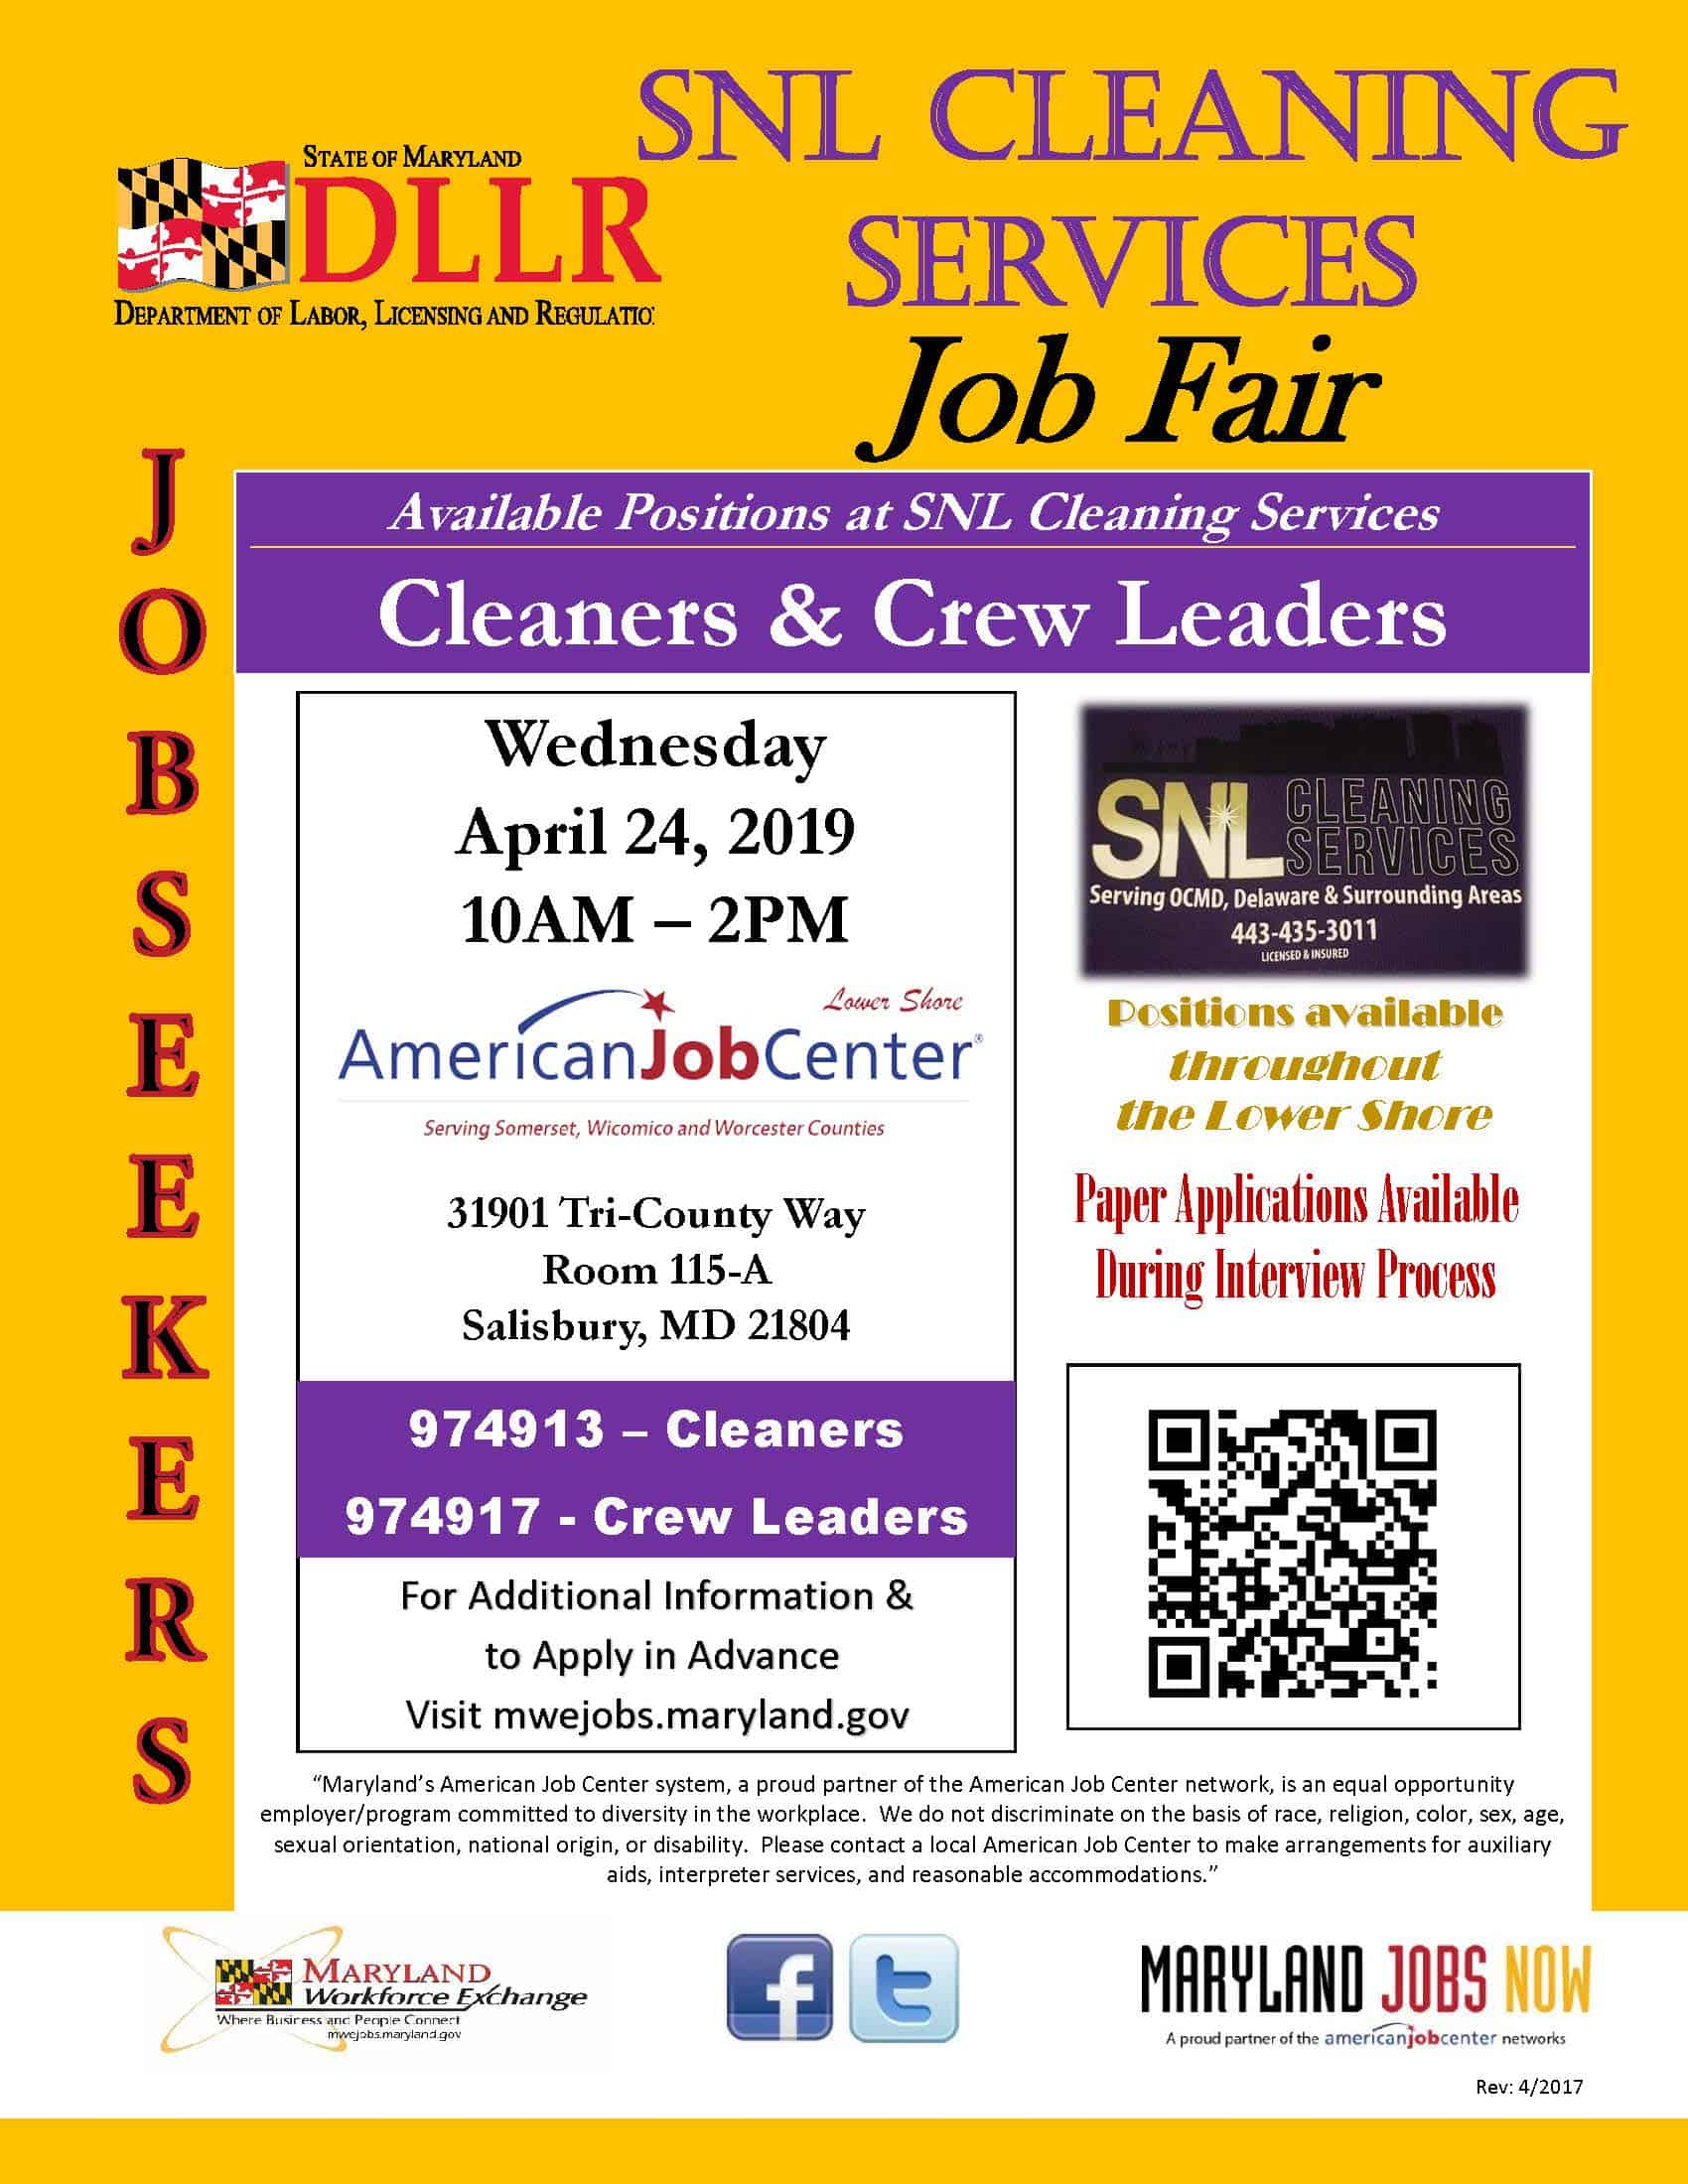 SNL Cleaning Services Job Fair 04242019 Flyer